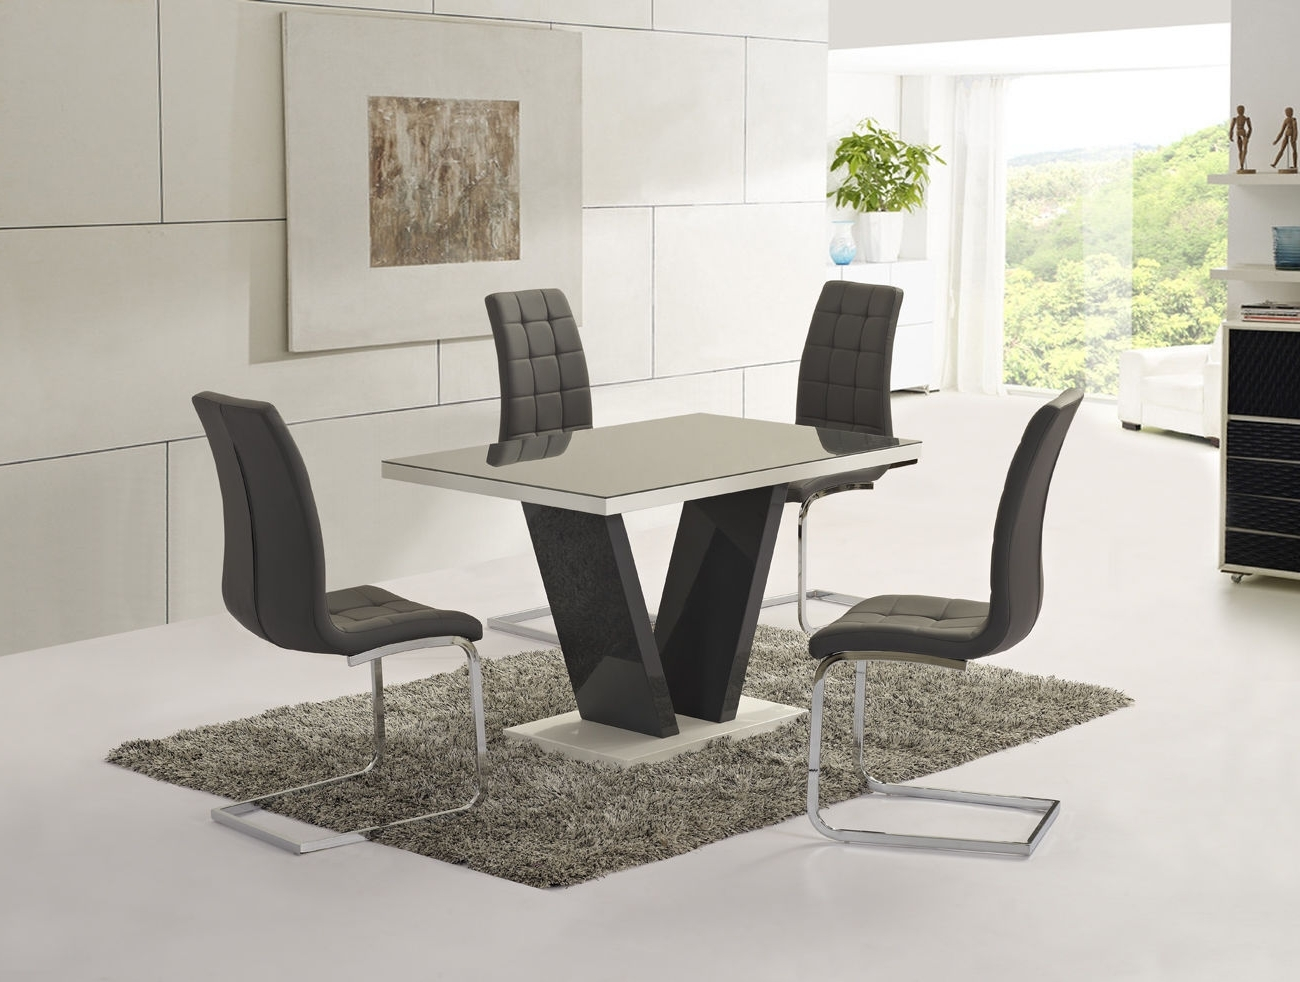 Ga Vico Gloss Grey Glass Top Designer 160Cm Dining Set - 4 6 Grey with regard to Favorite Black Glass Dining Tables With 6 Chairs